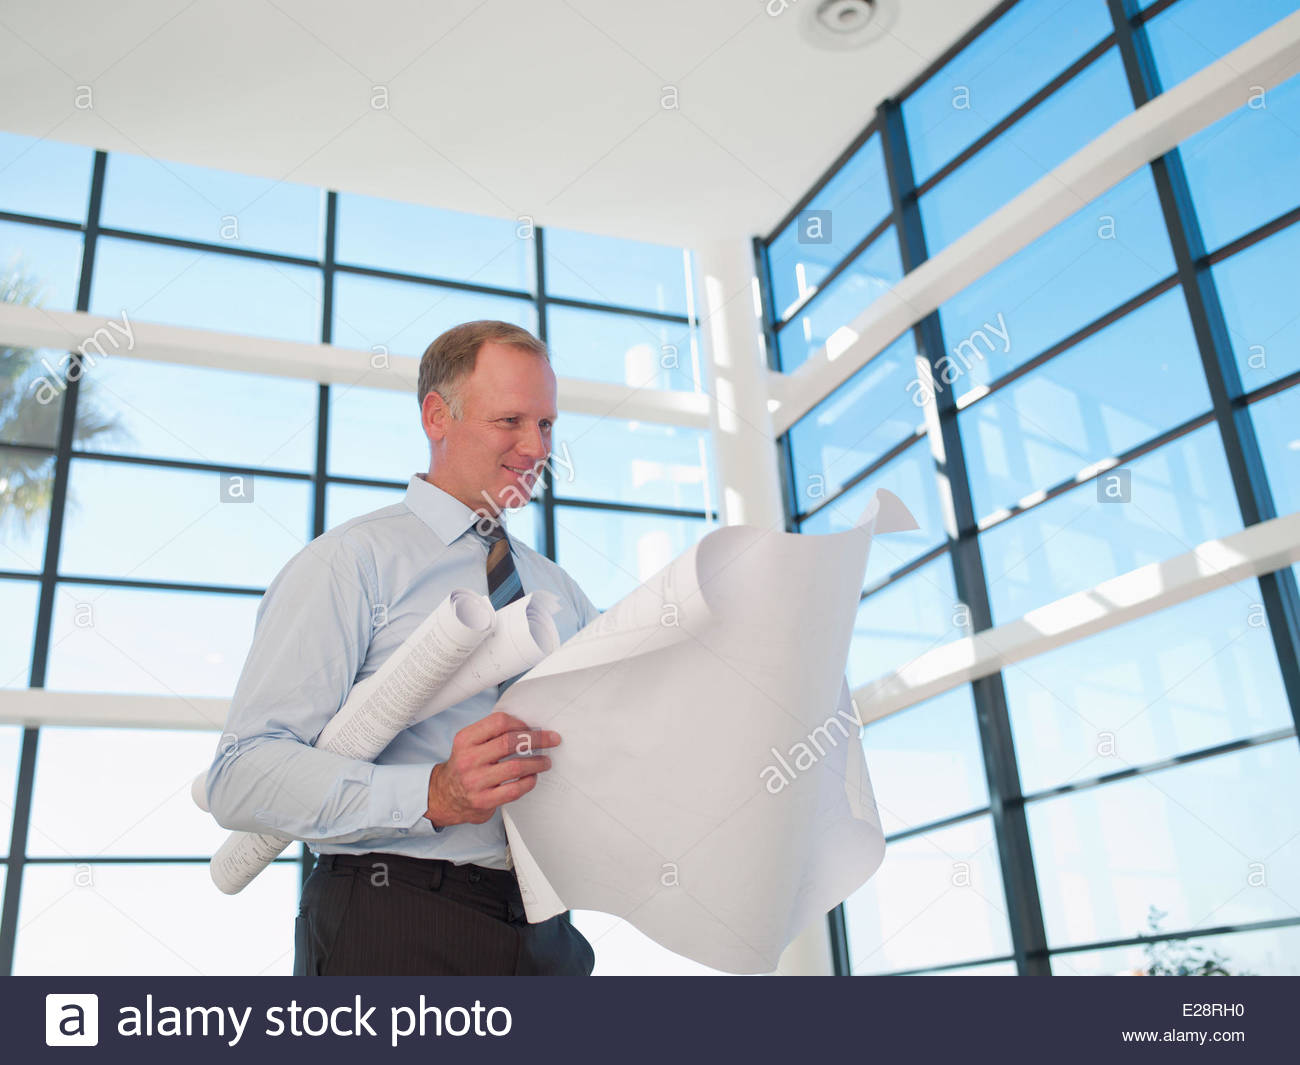 Architect reviewing blueprints - Stock Image